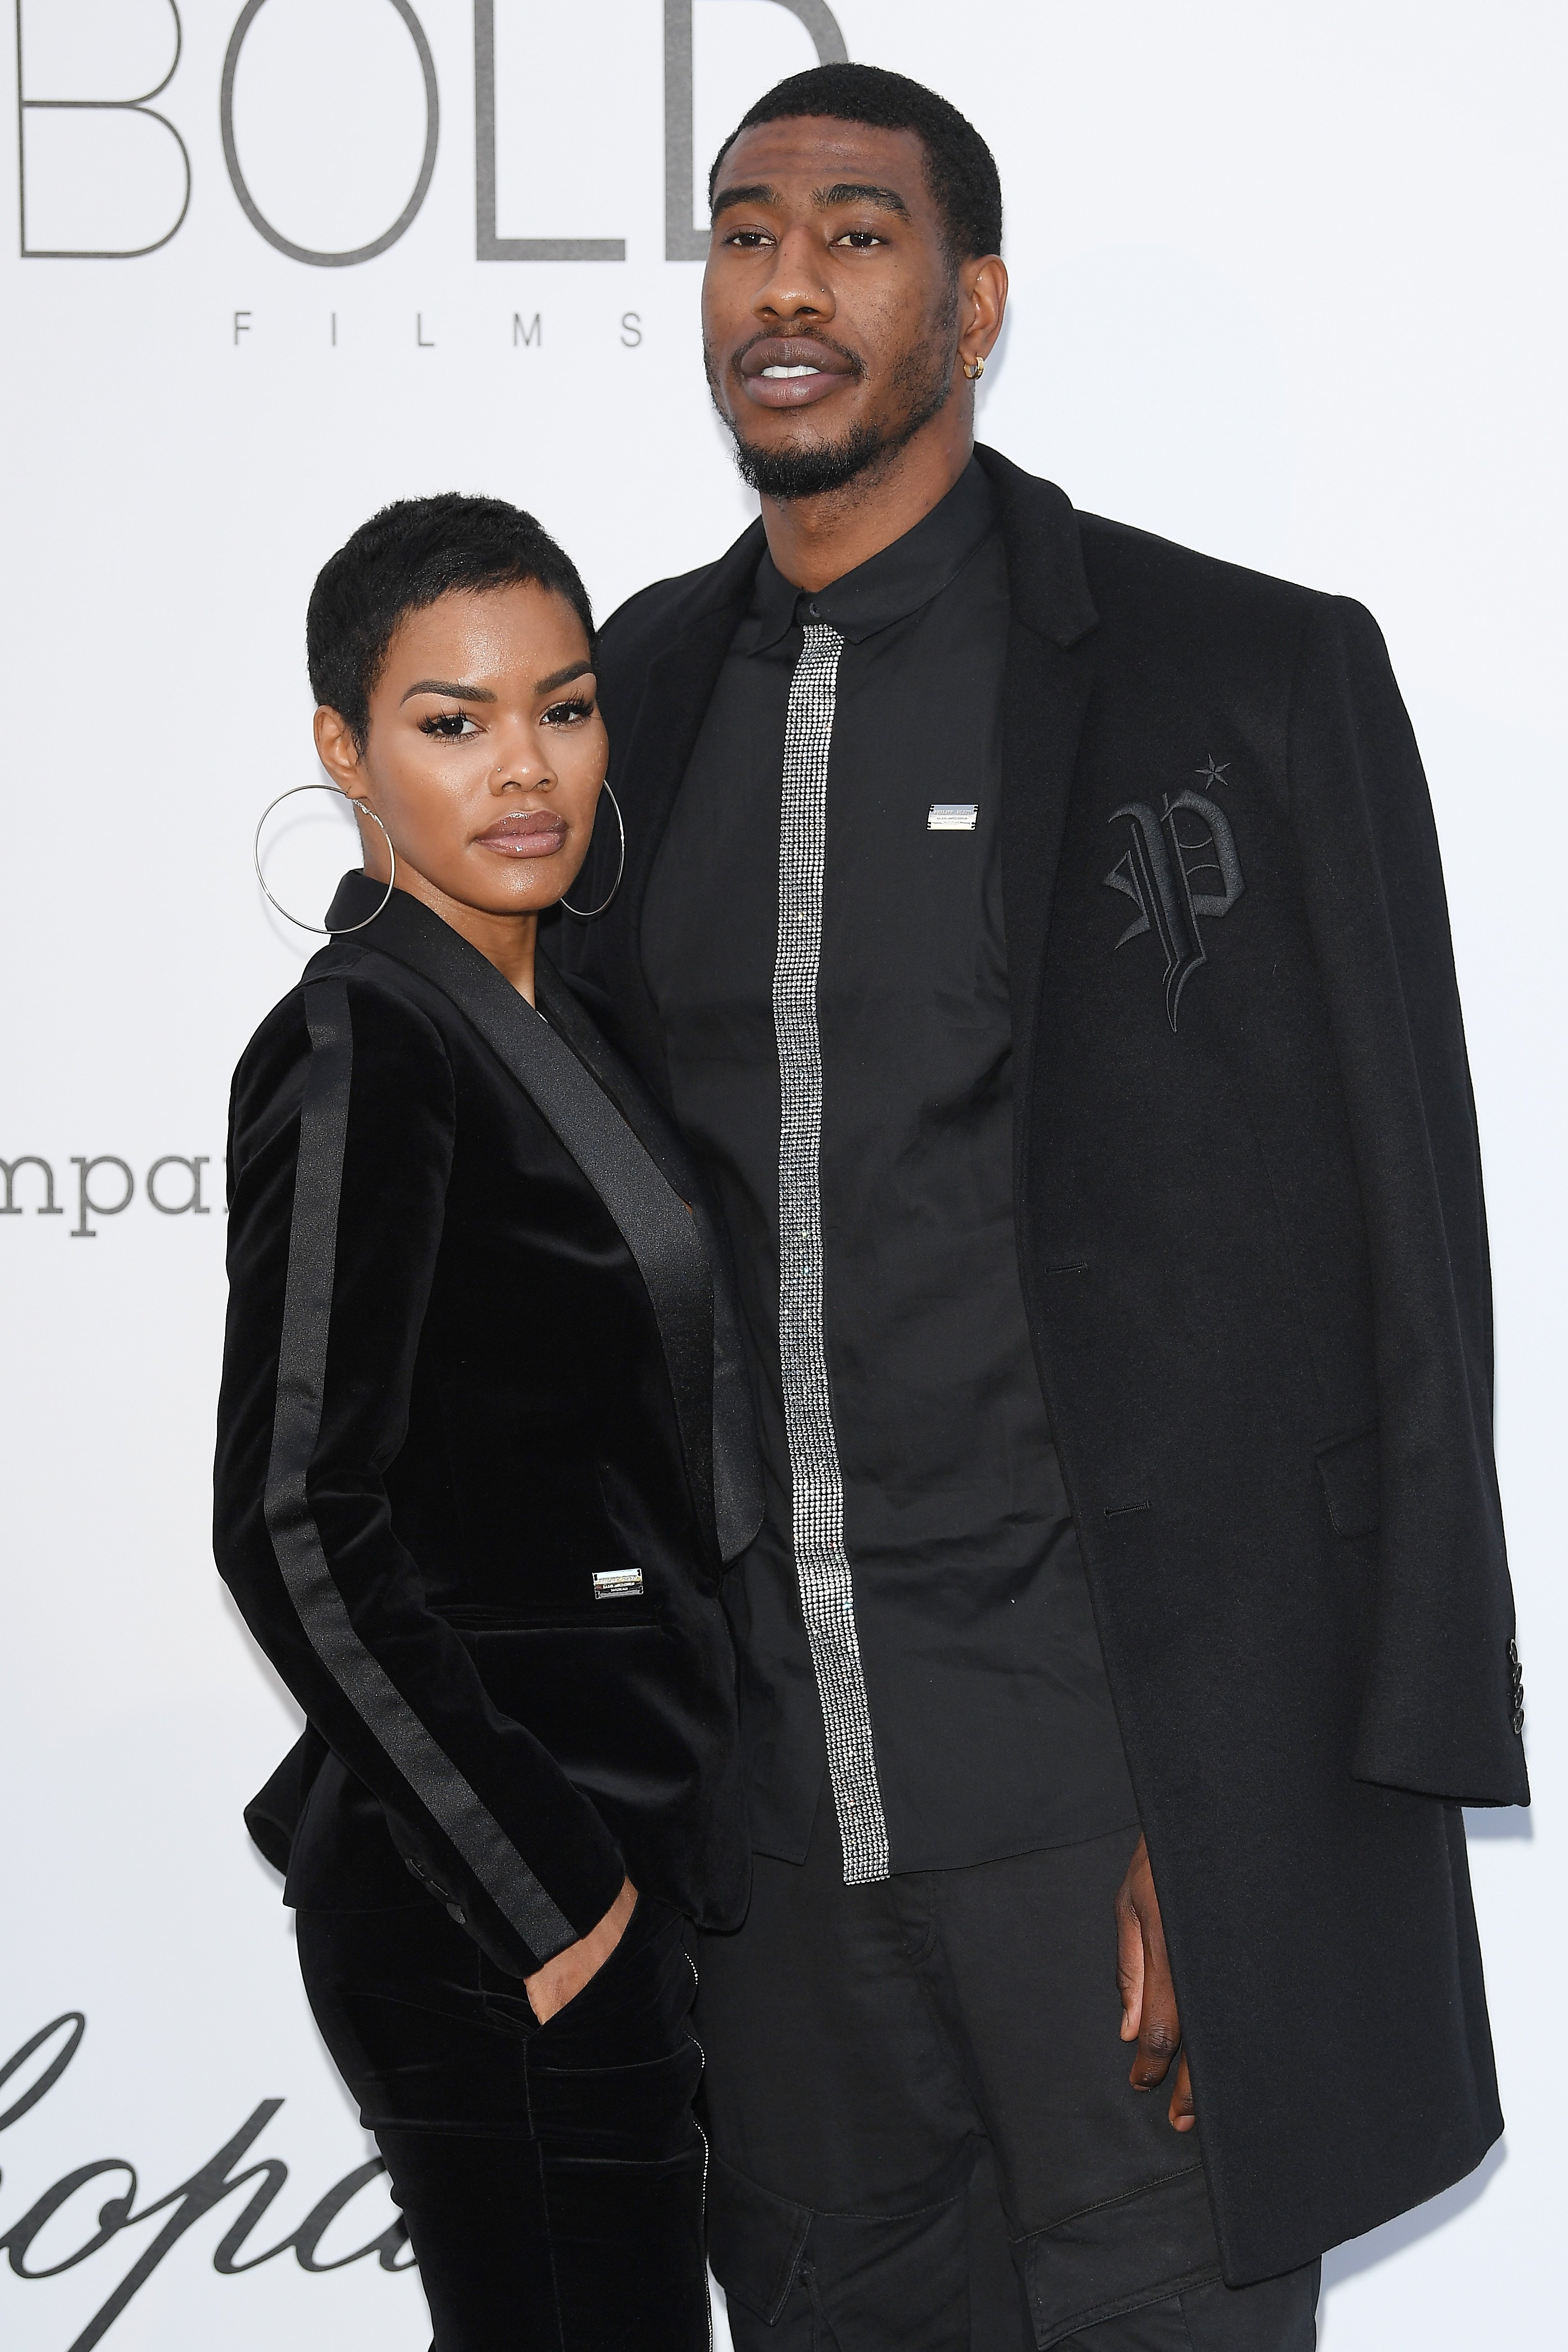 Teyana Taylor and Iman Shumpert at Hotel du Cap-Eden-Roc on May 17, 2018 in Cap d'Antibes, France   Photo: Getty Images